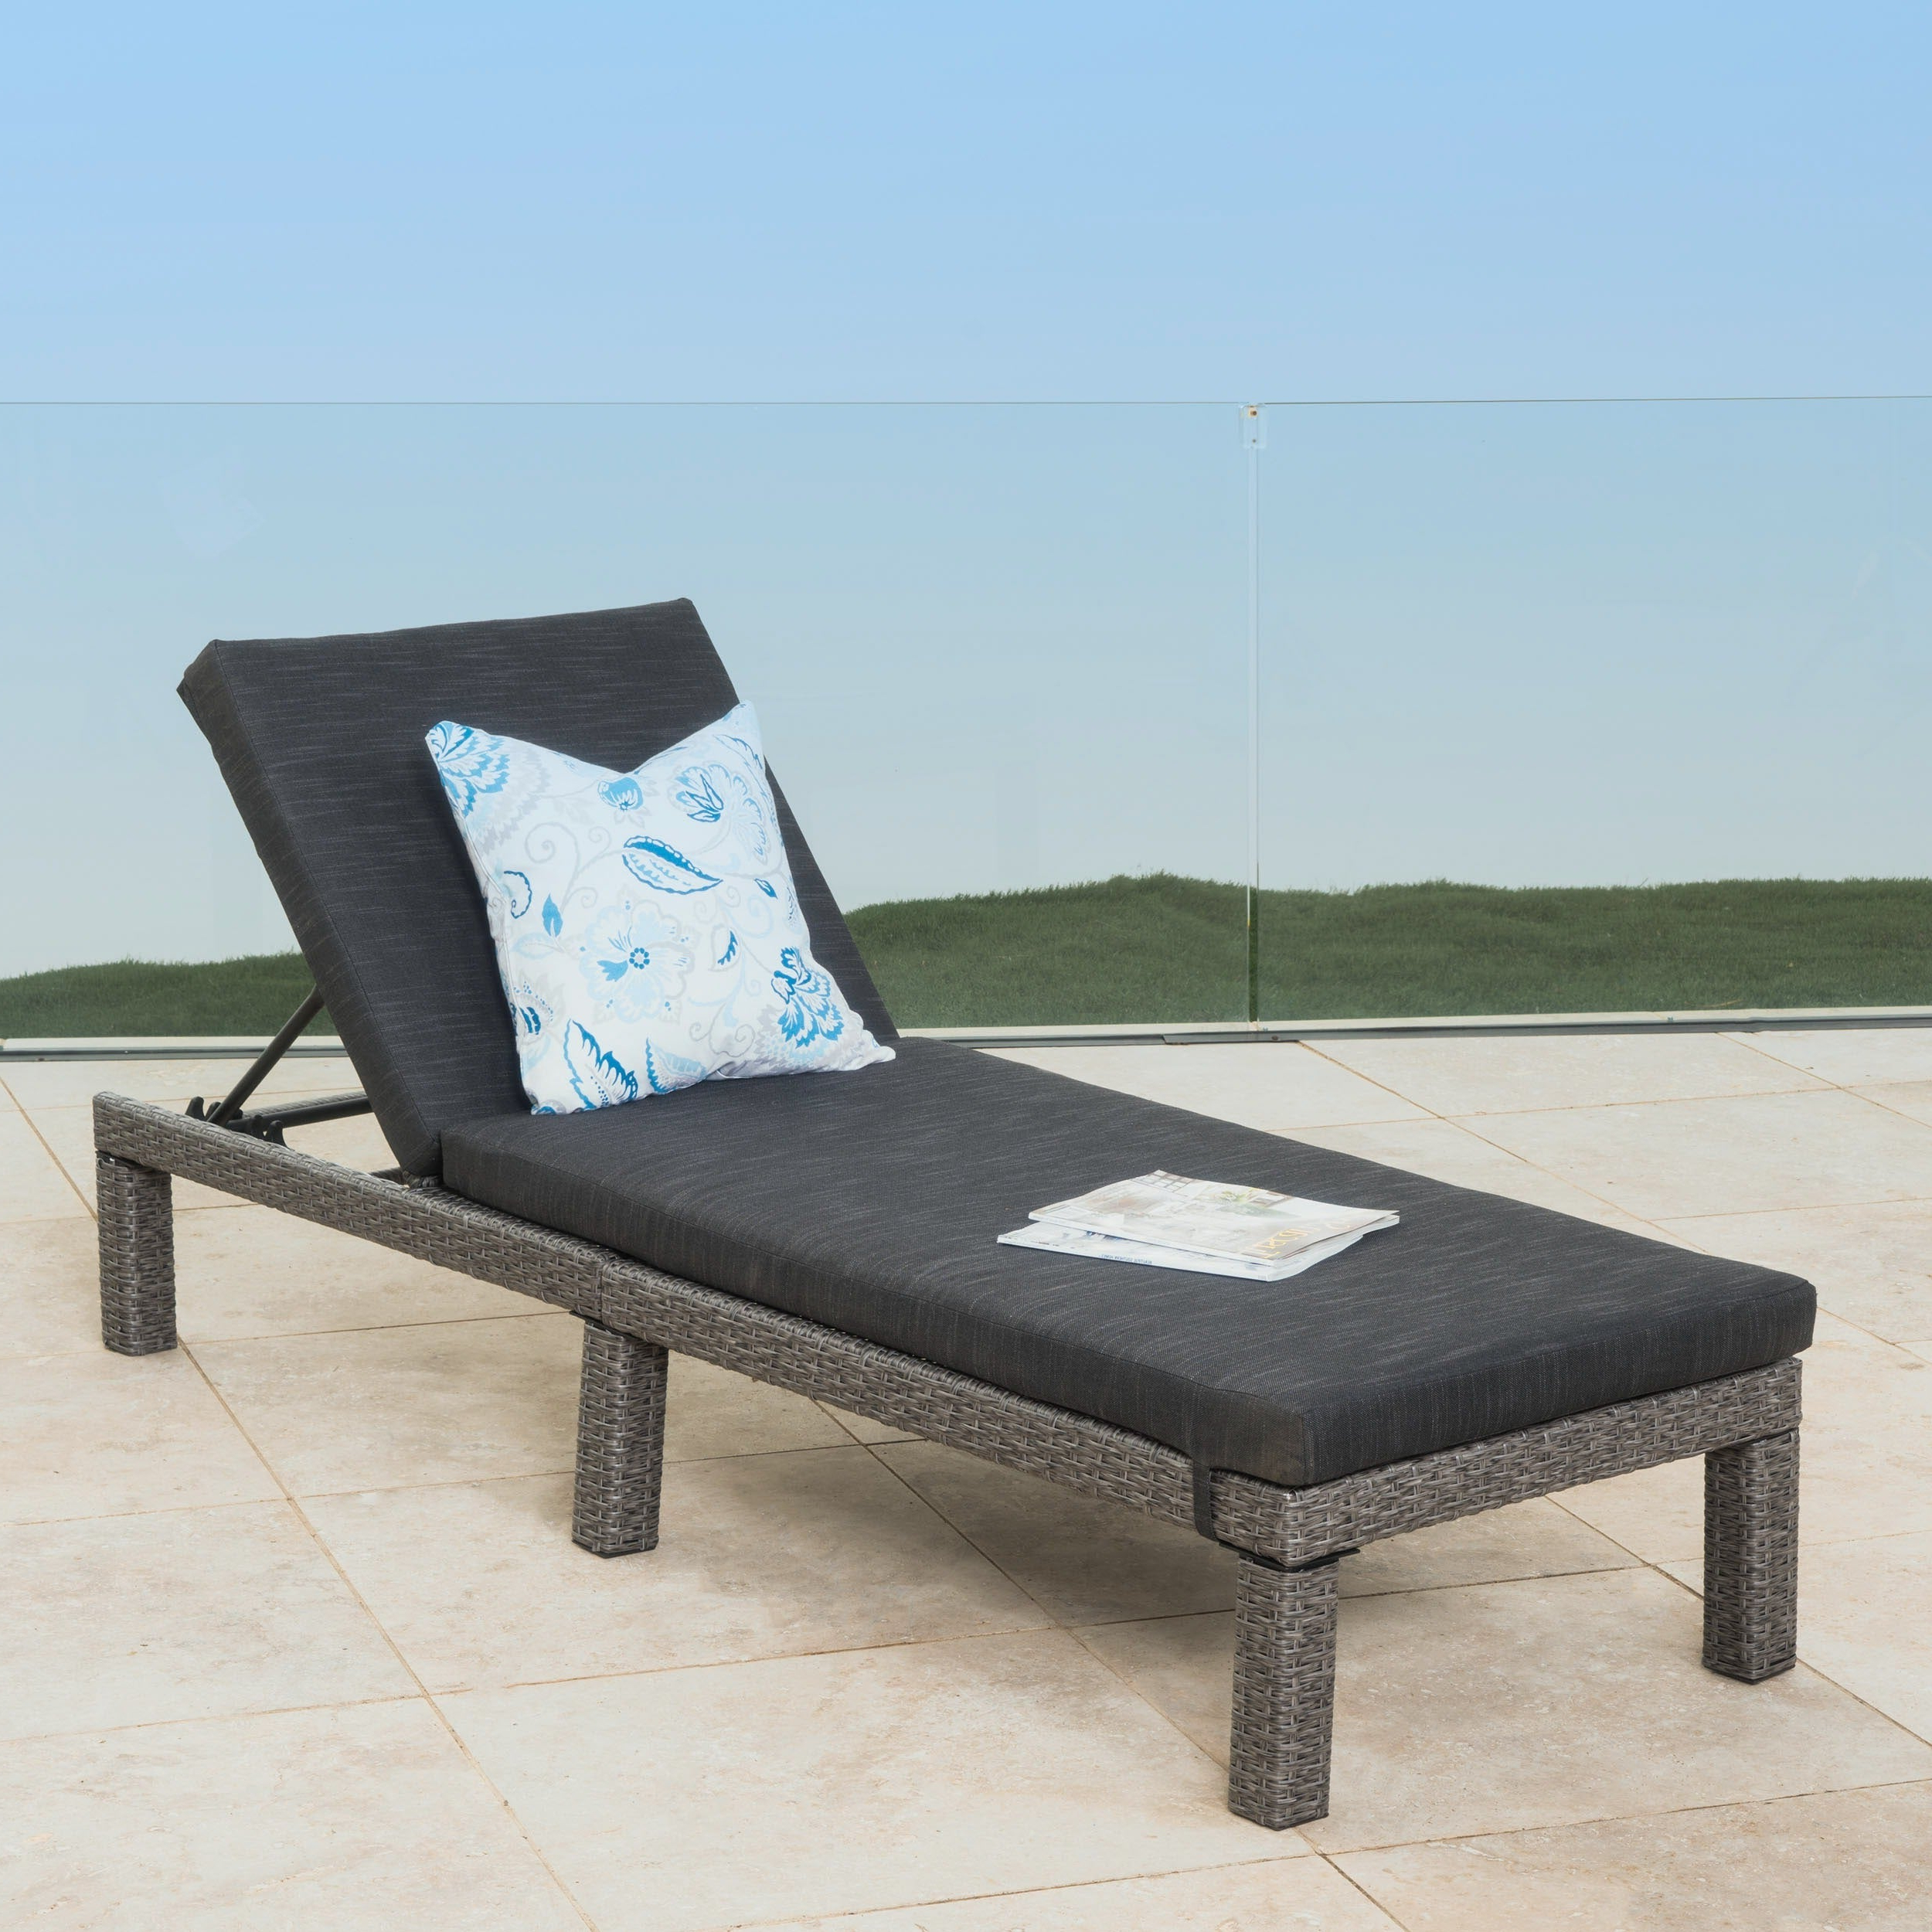 Adjustable Outdoor Wicker Chaise Lounge Chairs With Cushion In Preferred Puerta Outdoor Adjustable Wicker Chaise Lounge With Cushionchristopher  Knight Home (View 2 of 25)